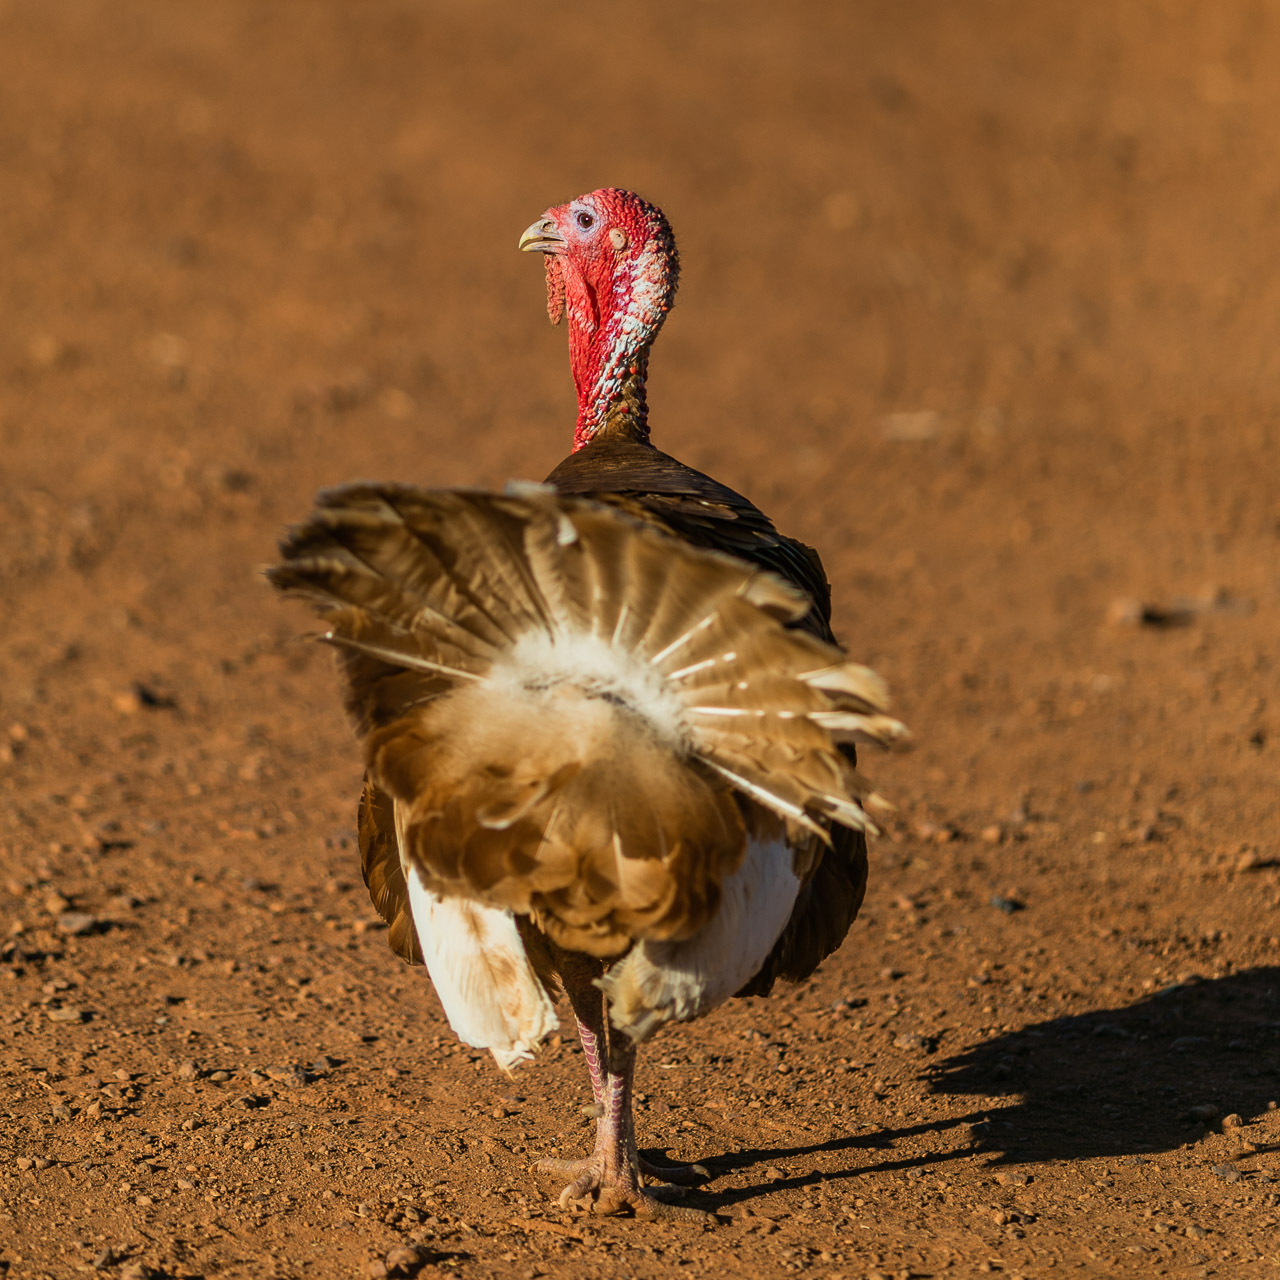 A turkey walking away with attitude